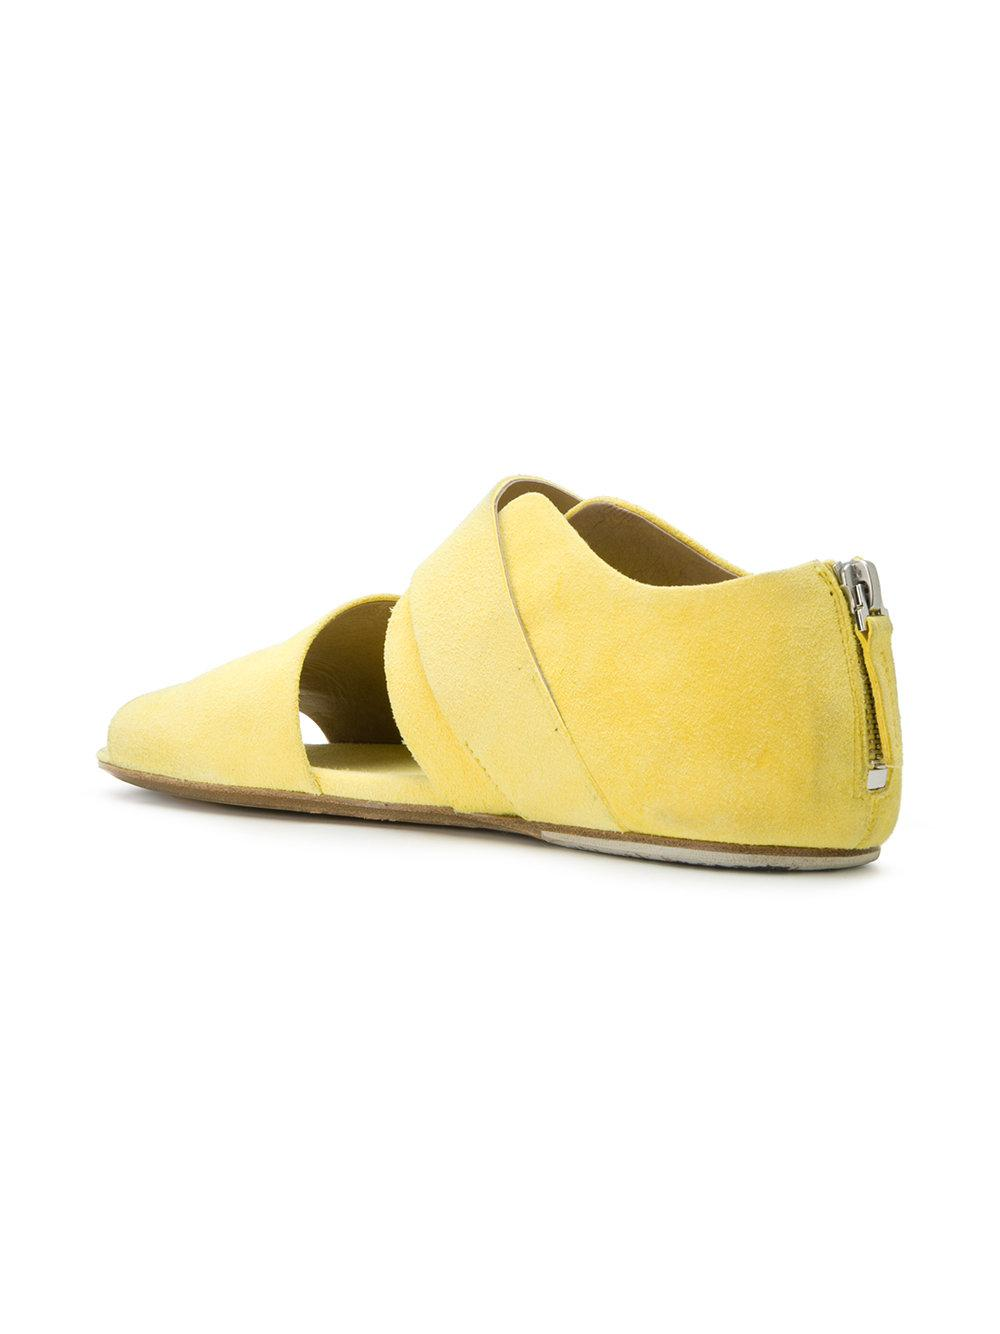 open toe slides - Yellow & Orange Mars��ll hsKm0F